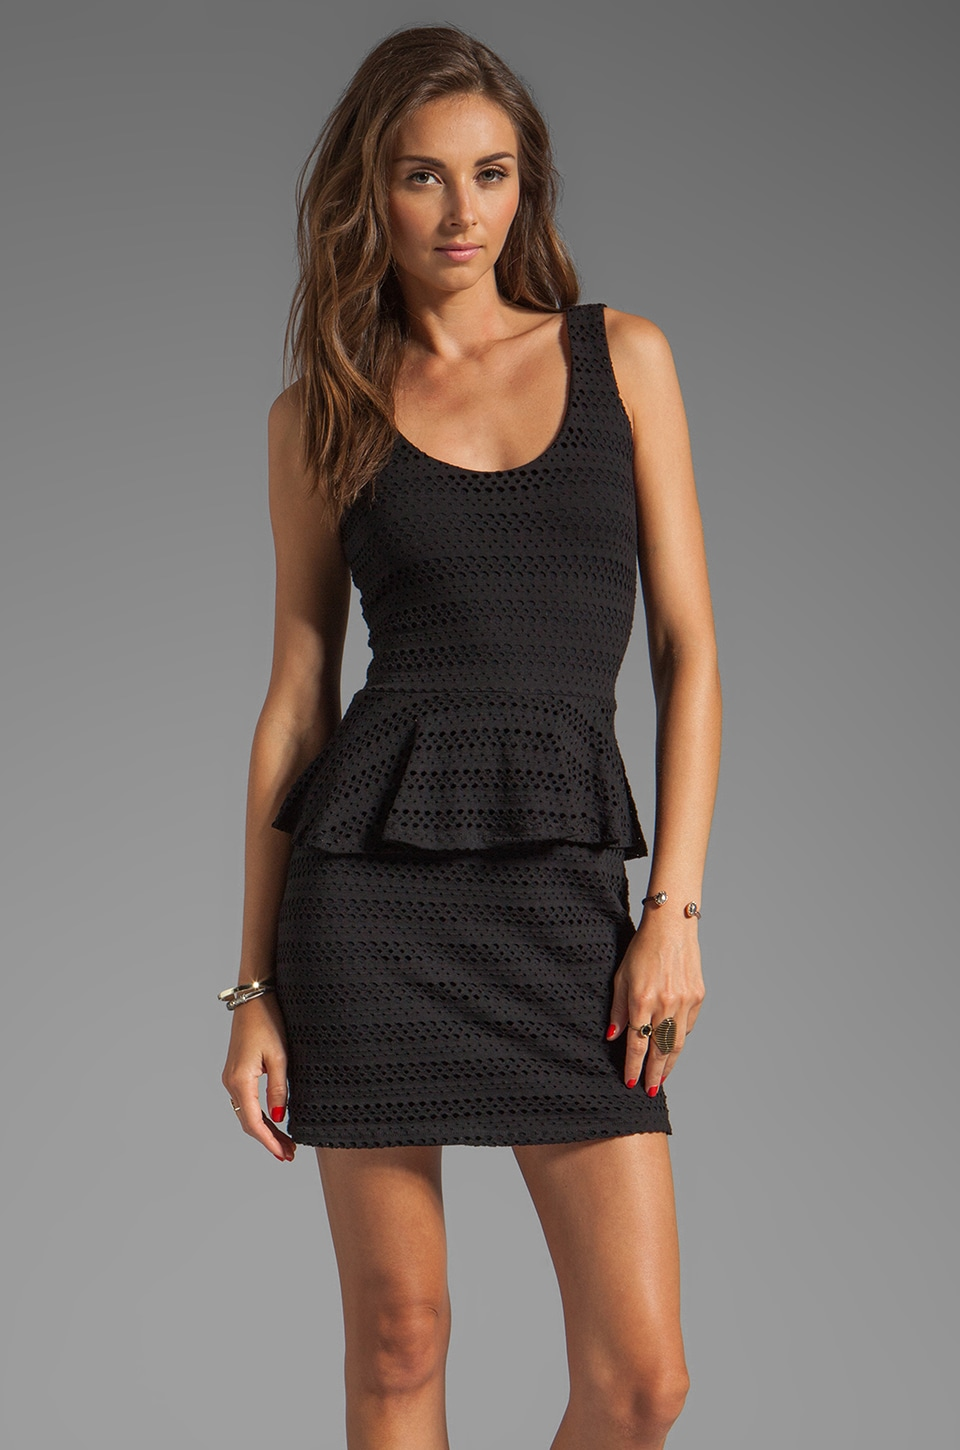 Eight Sixty Peplum Tank Dress in Black